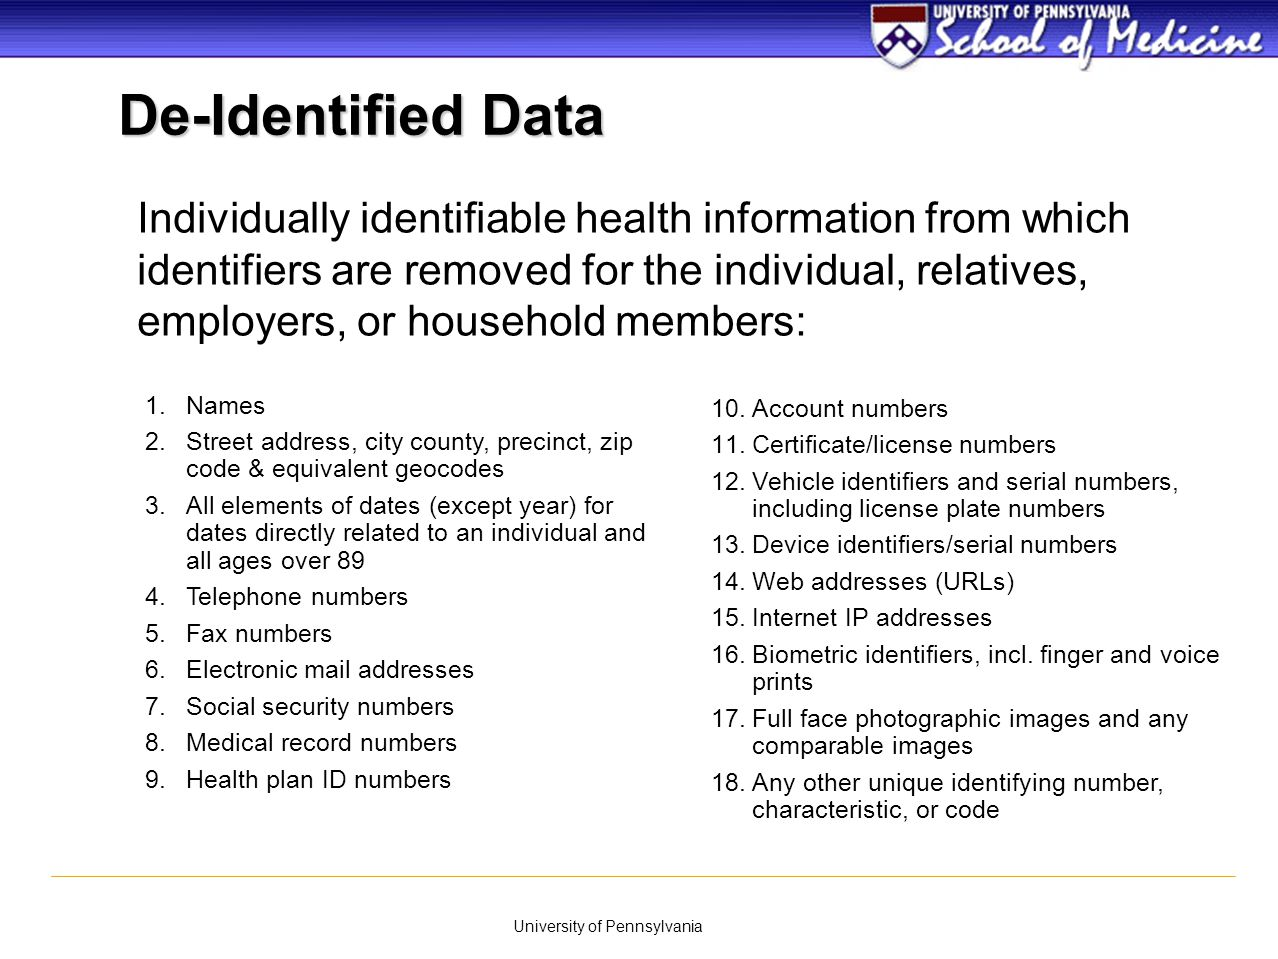 University of Pennsylvania Individually identifiable health information from which identifiers are removed for the individual, relatives, employers, o